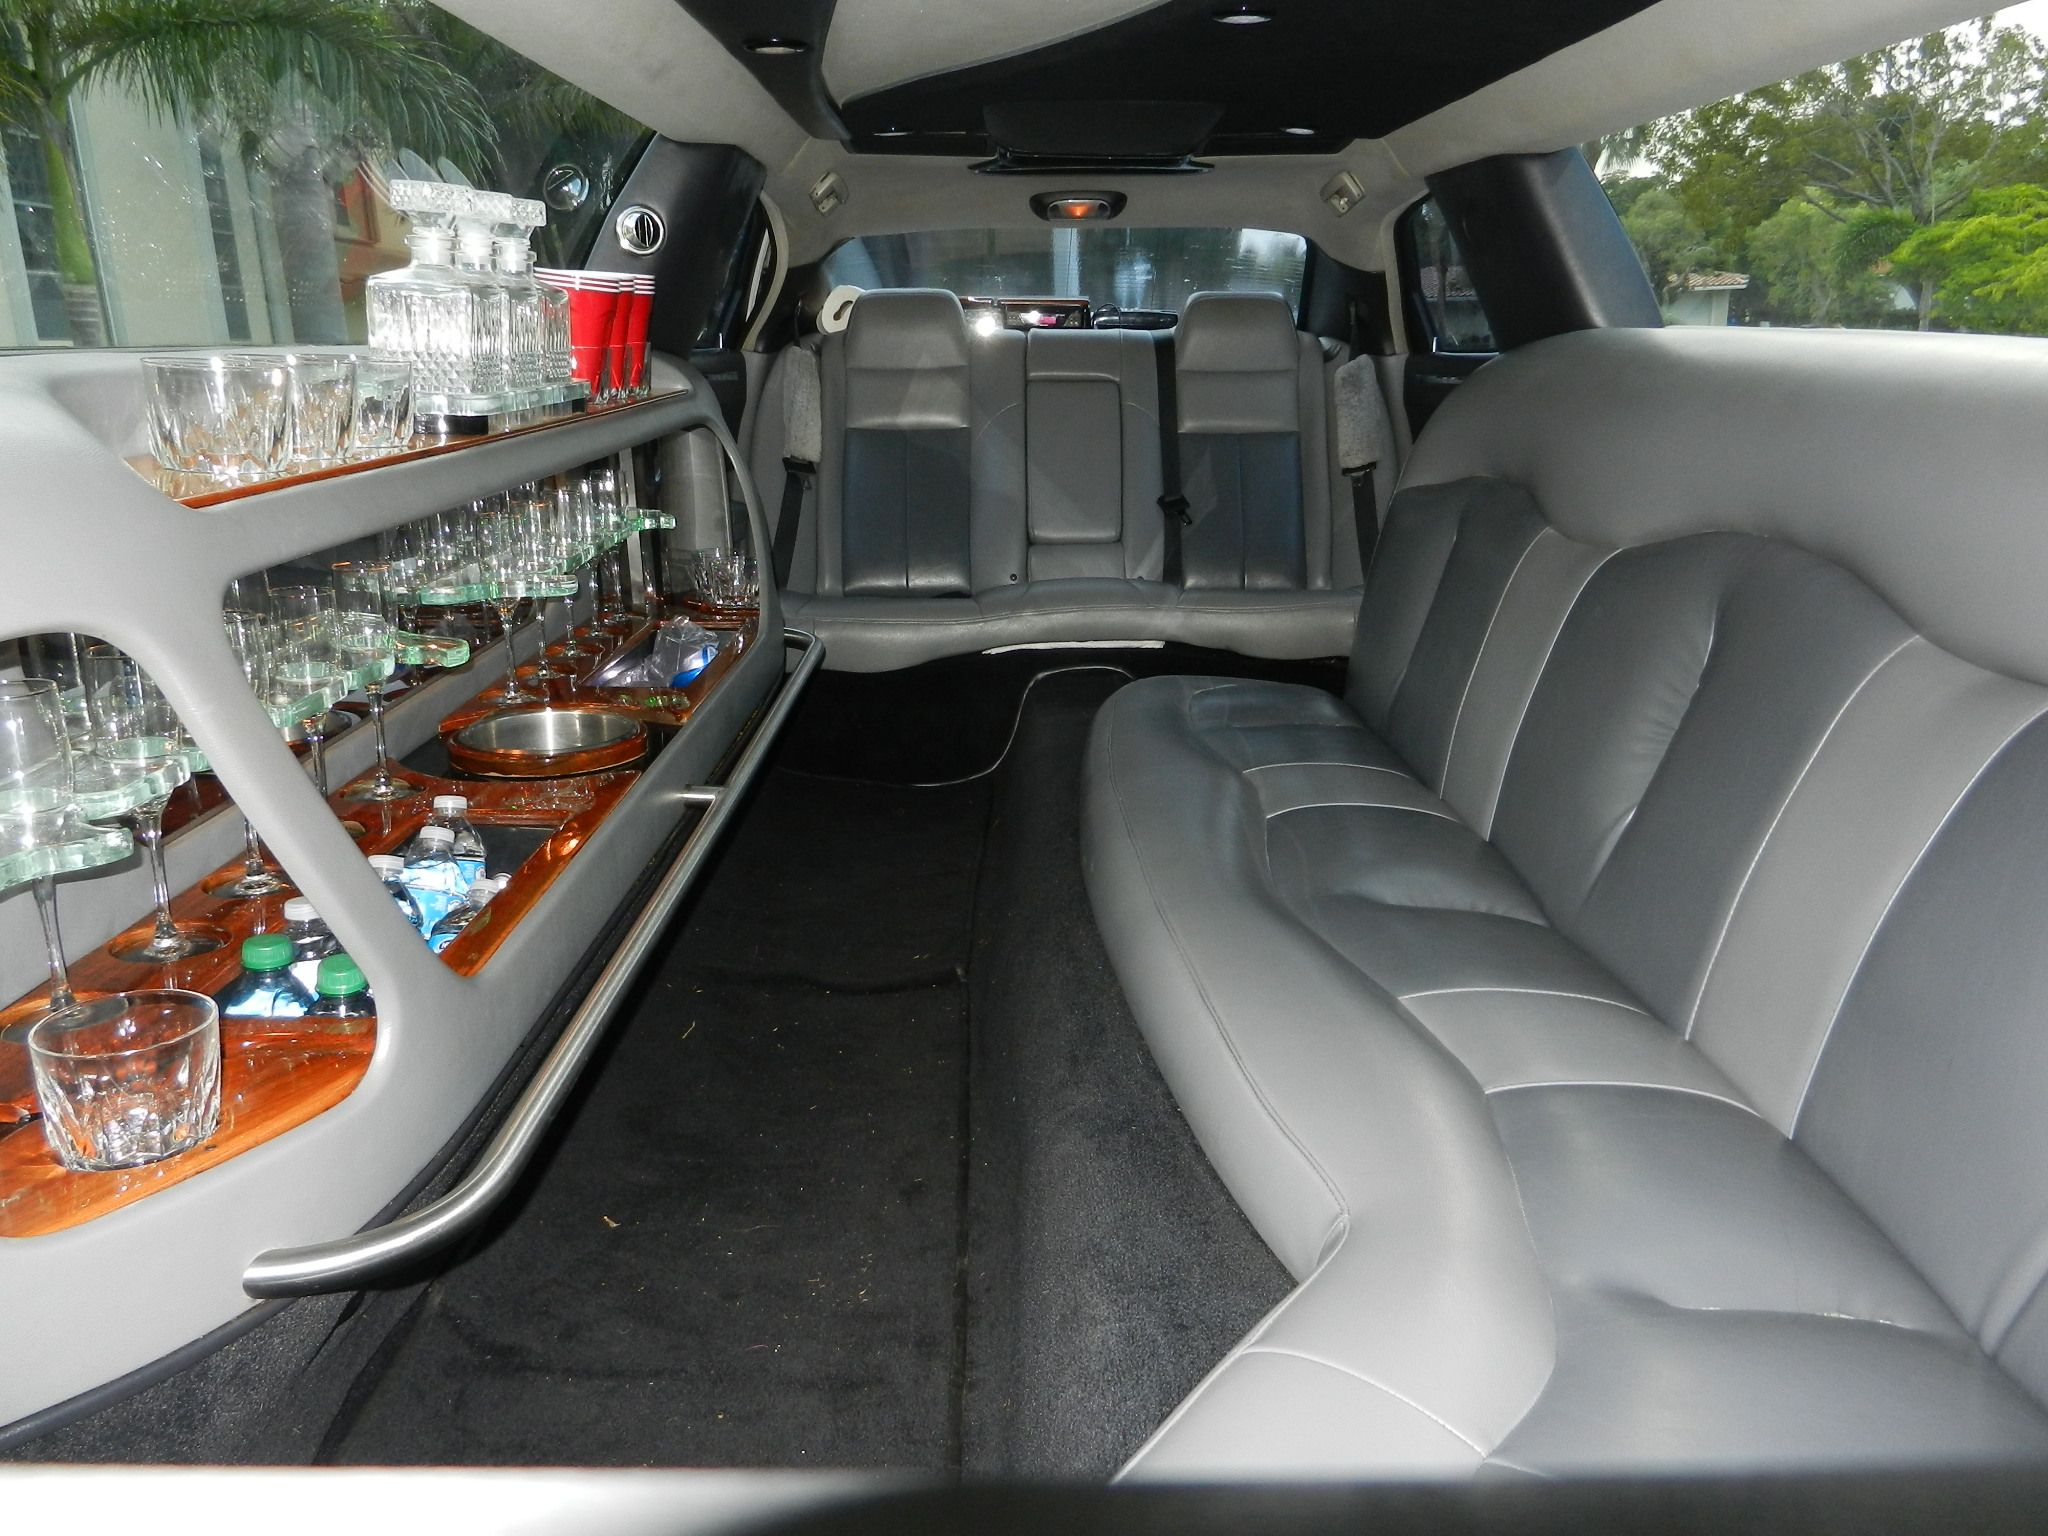 http://www.ftlauderdalelimo.biz/fort-lauderdale-limos/ Seats 8 10 12 passenger side luxury limos 100″ – 130″ of luxury stretched limo entertainment Privacy Divider Dual AC Control